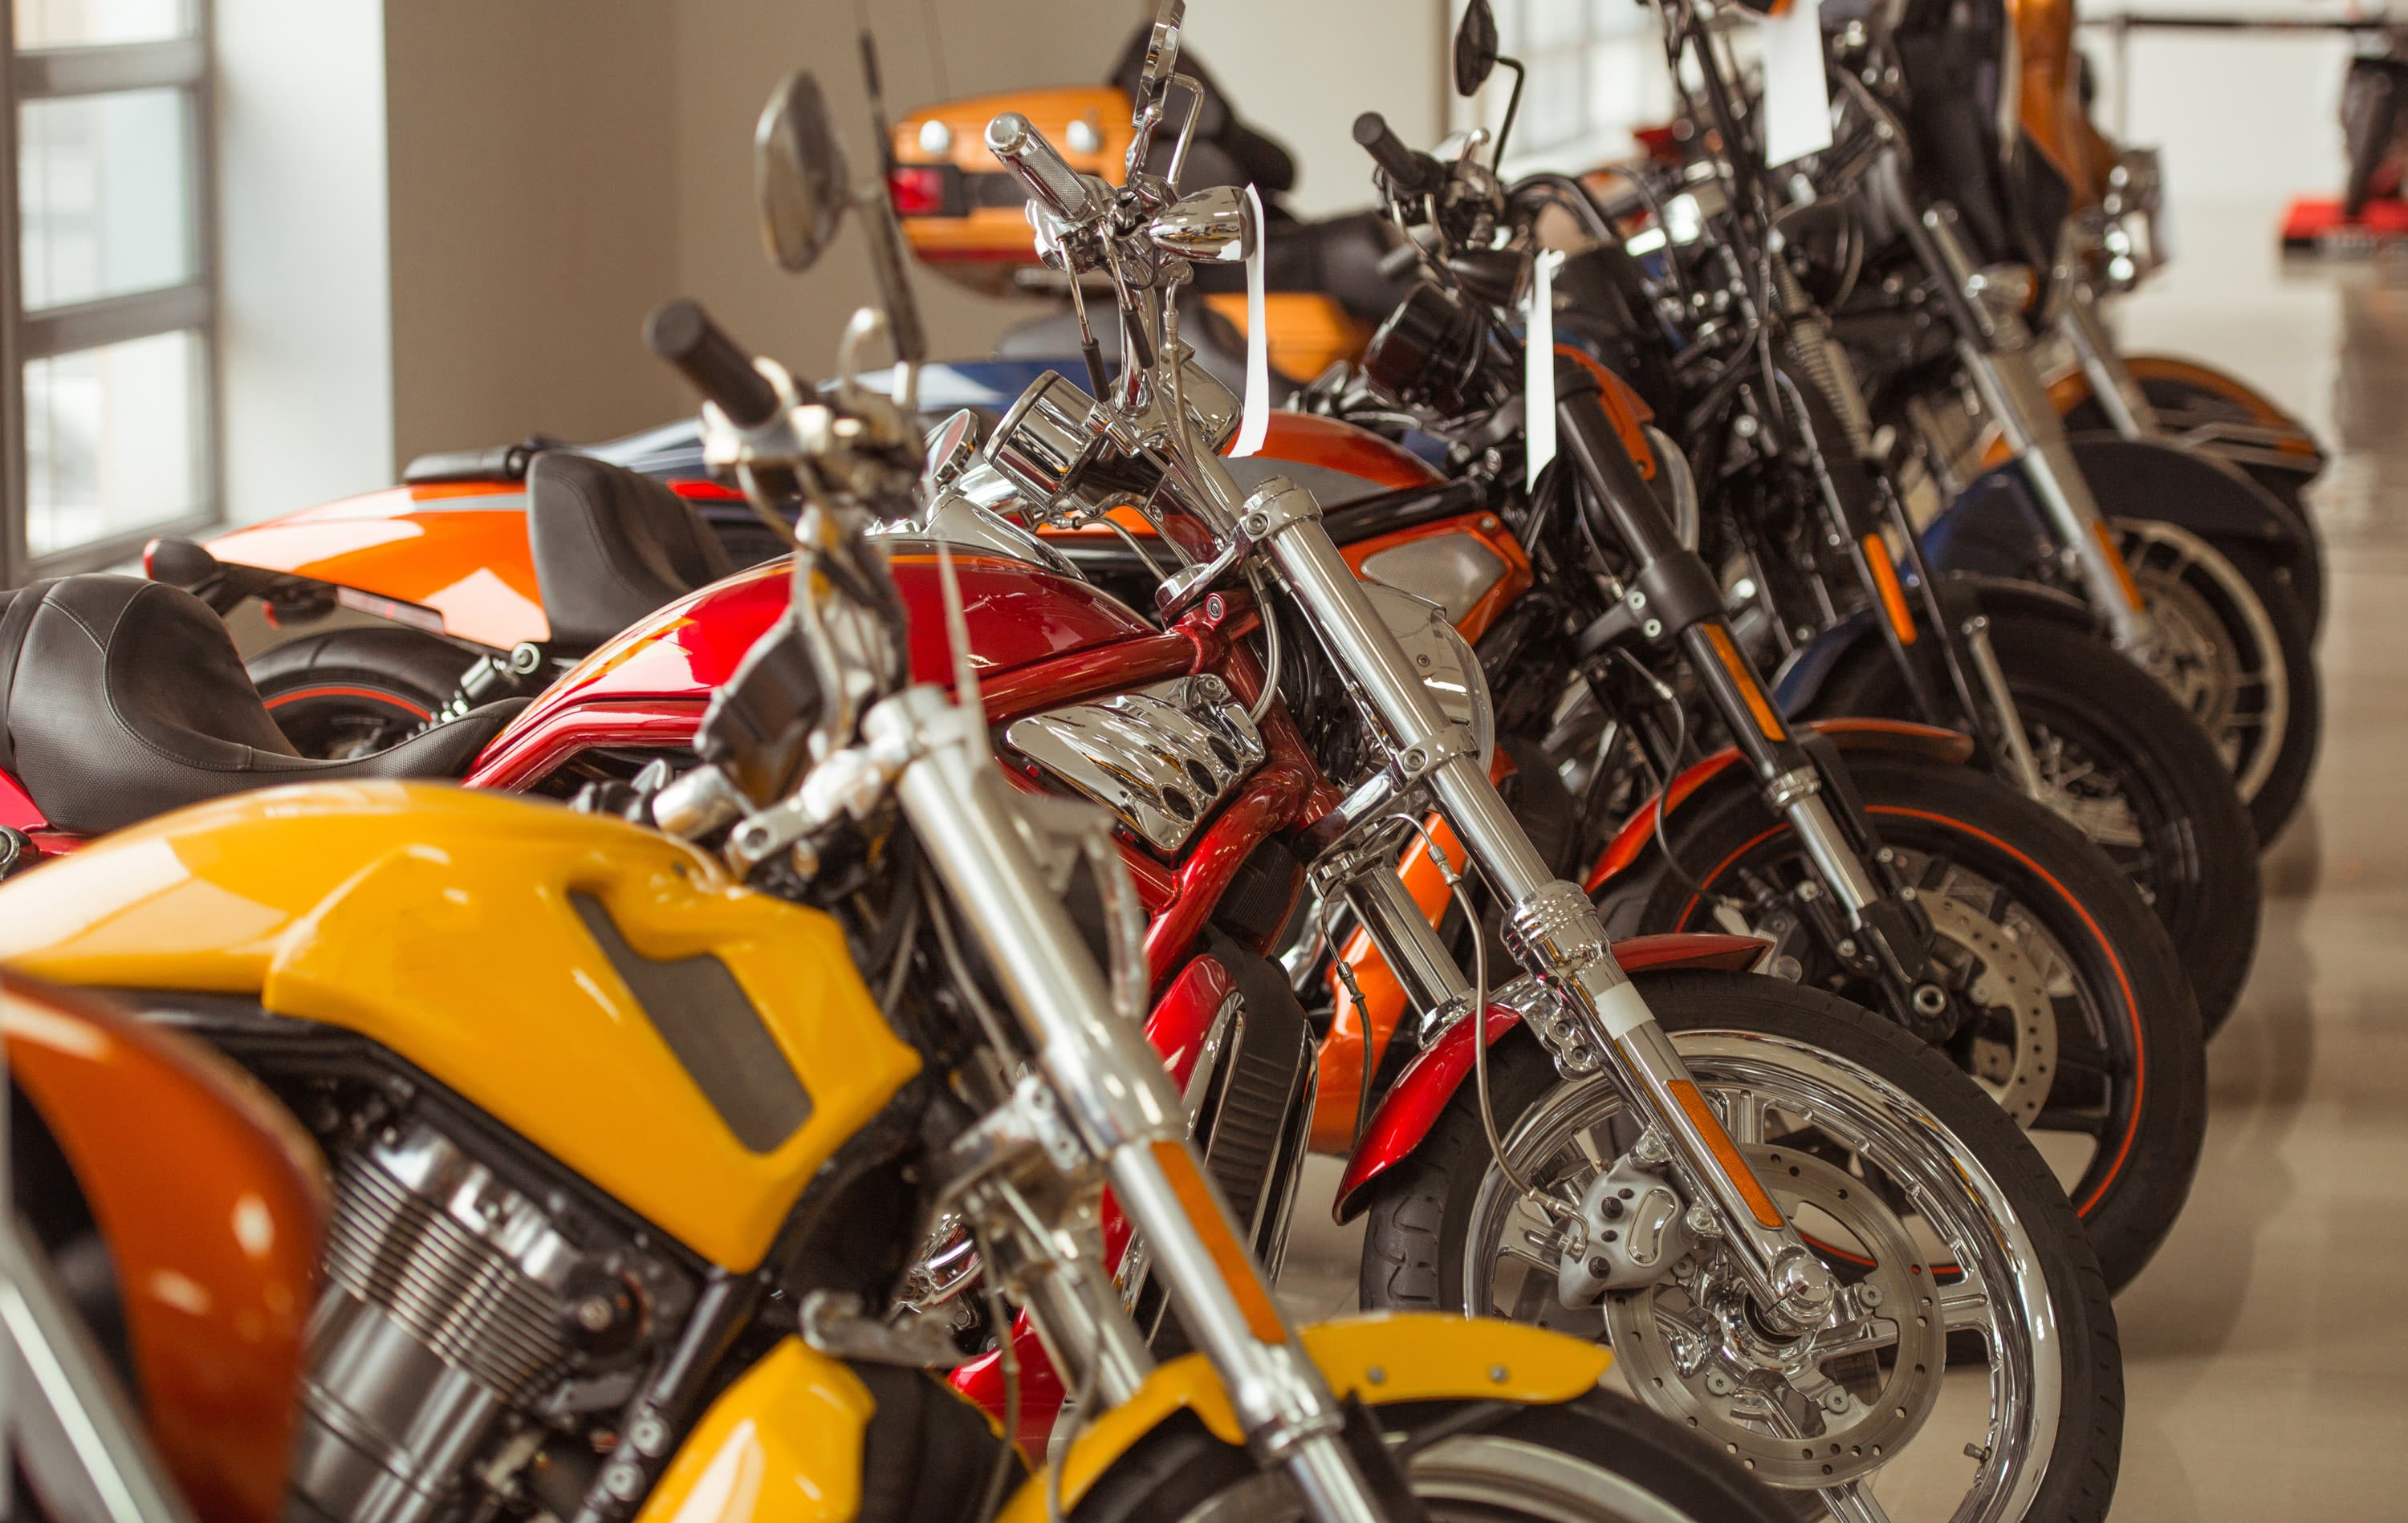 Several motorcycles lined up - Used Harleys